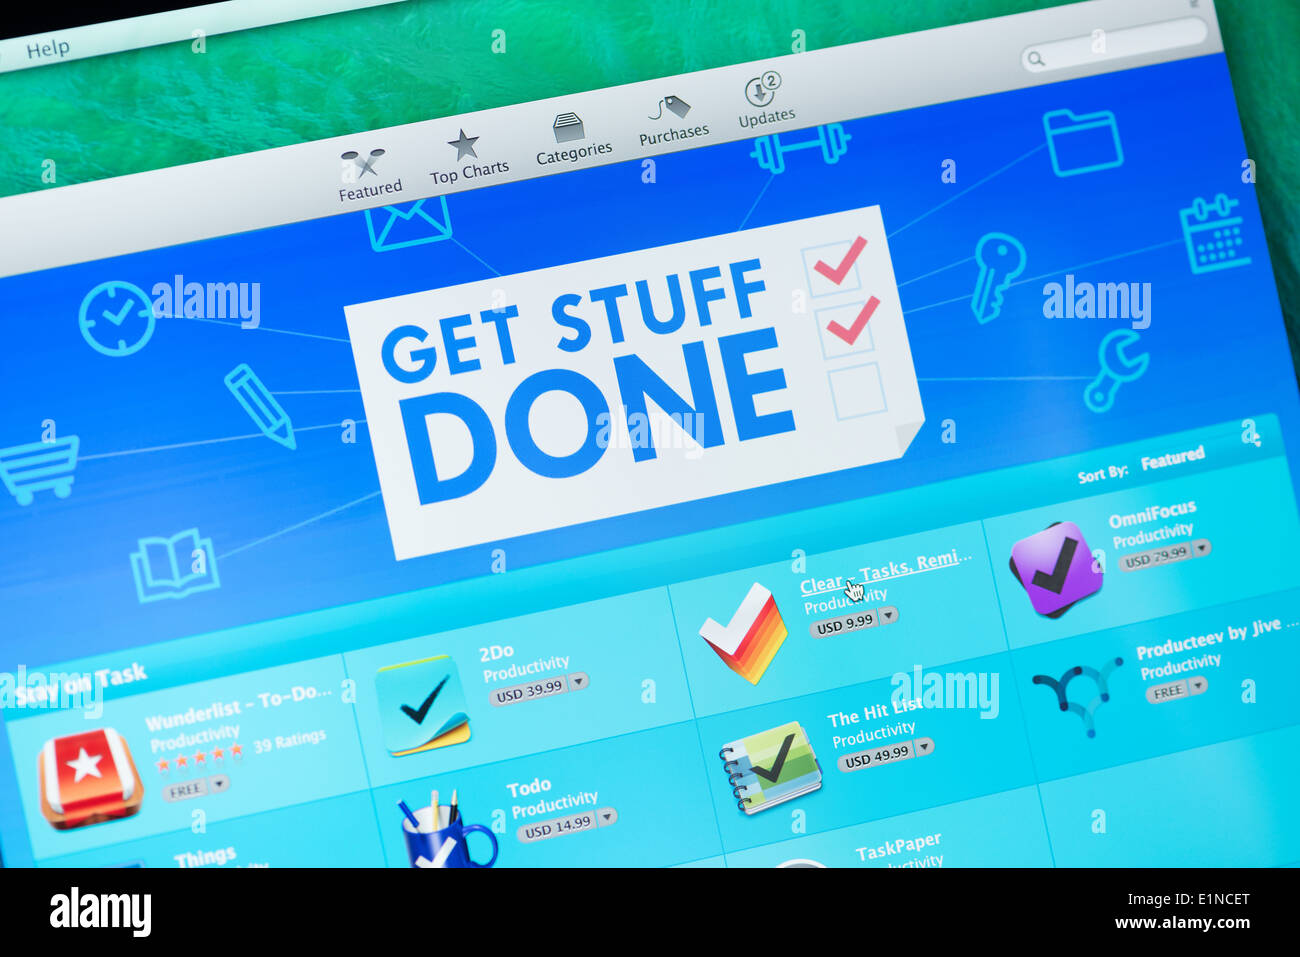 App Store screen with Get Stuff Done apps collection for productivity workflow - Stock Image